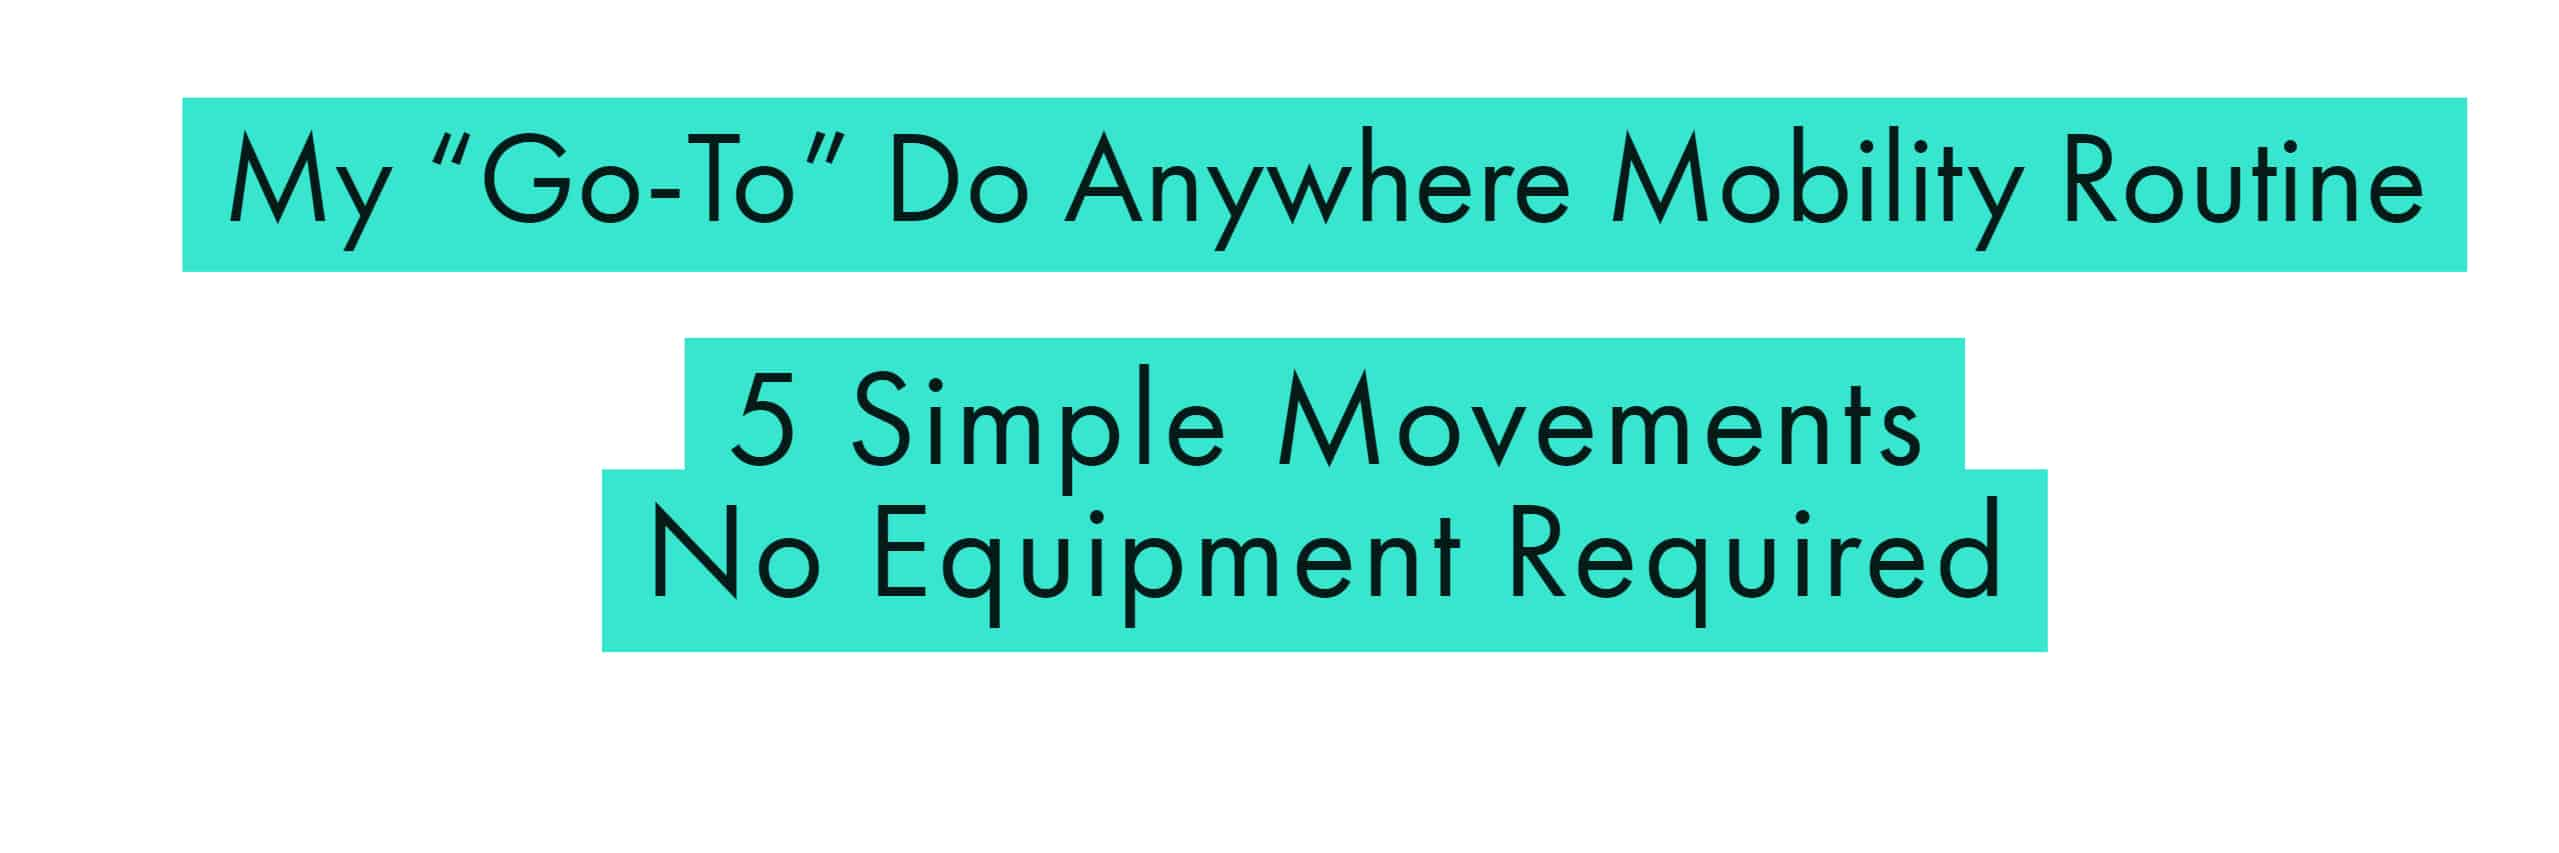 My go-to, do anywhere mobility routine